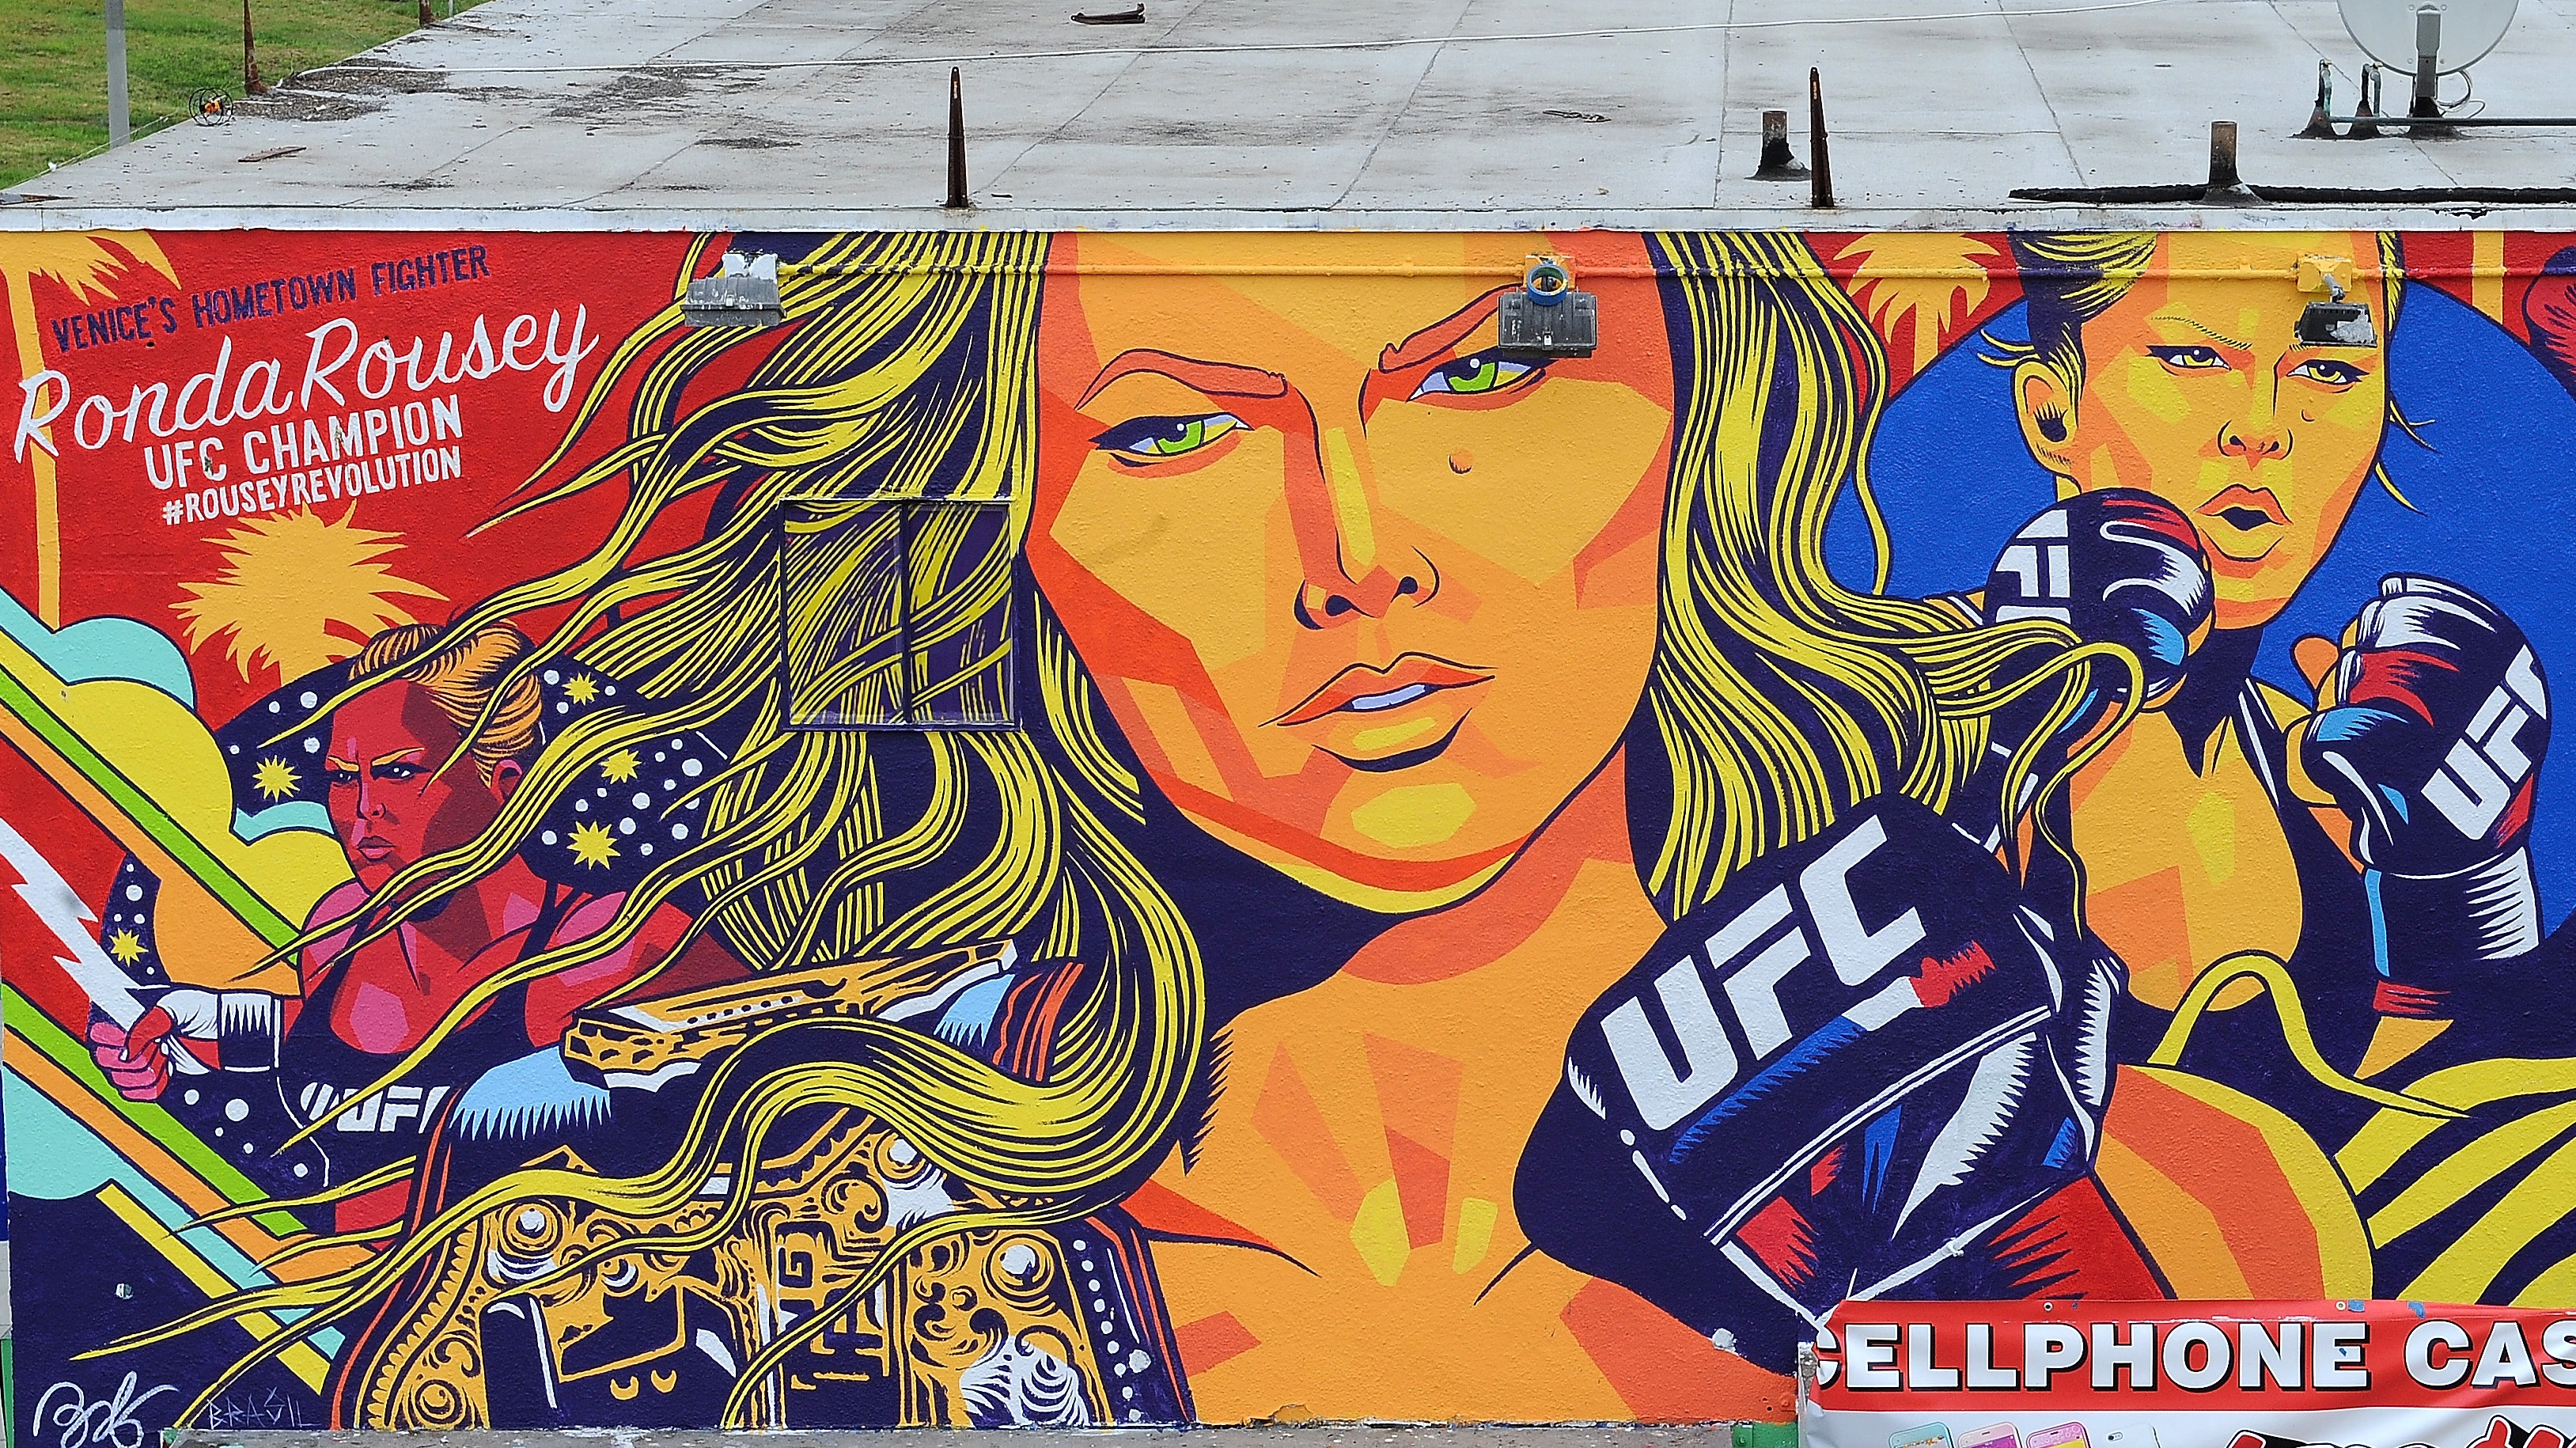 A general view of a mural painted in honor of UFC women's bantamweight champion Ronda Rousey on October 16, 2015 in Venice, Calif. (Photo by Joshua Blanchard /Zuffa LLC/Zuffa LLC via Getty Images)